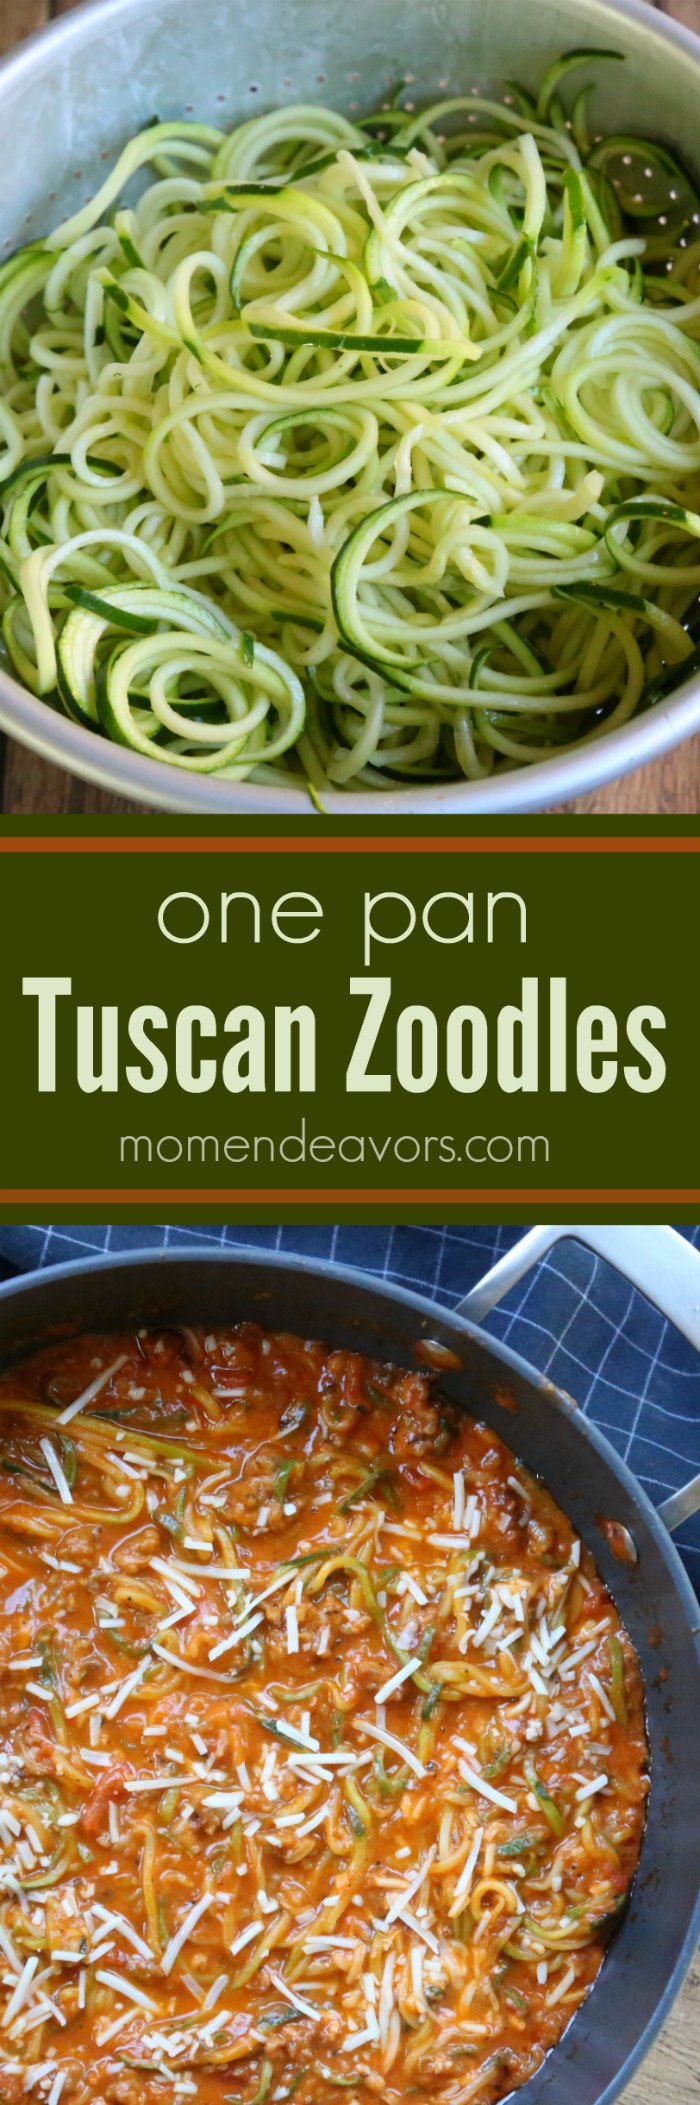 One pan tuscan zoodles